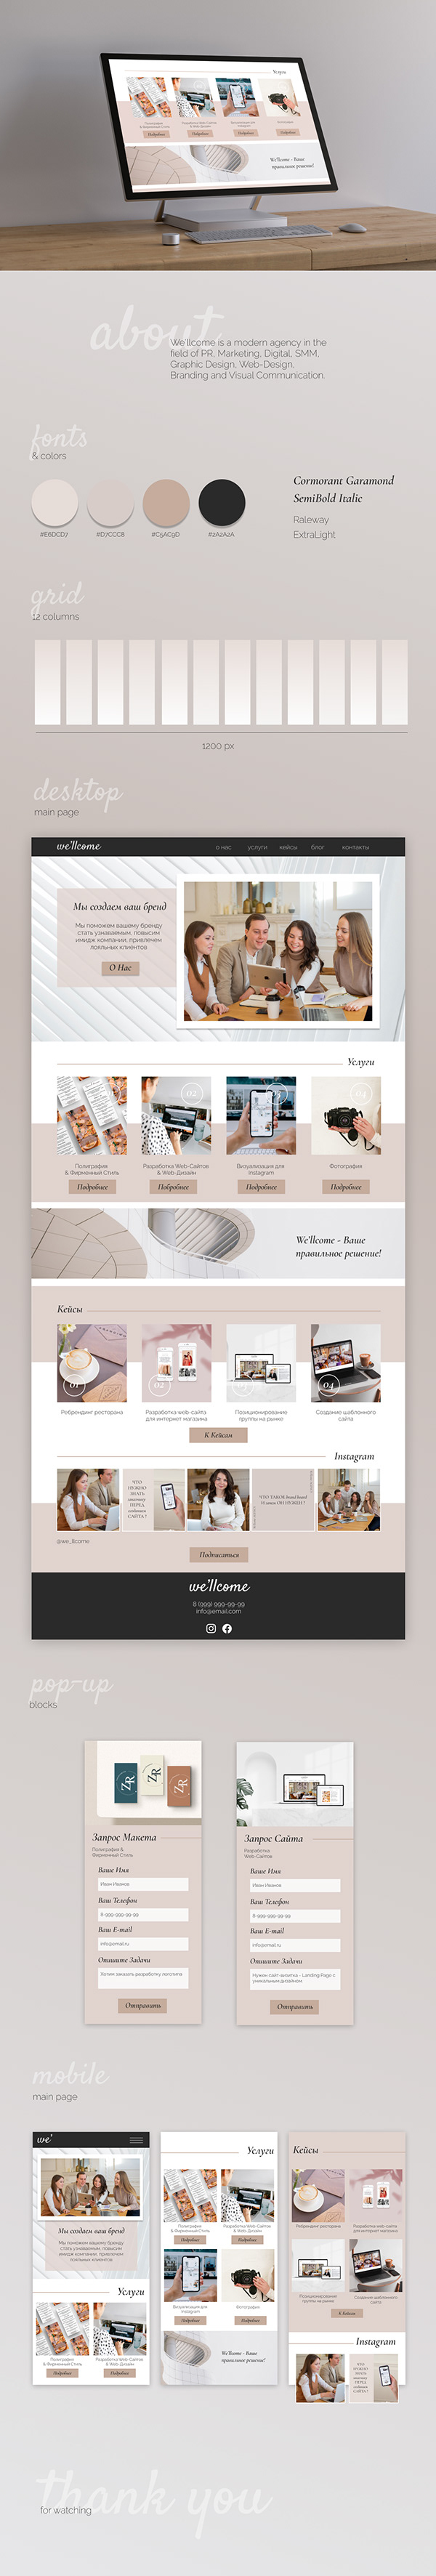 Web-site for We'llcome Agency